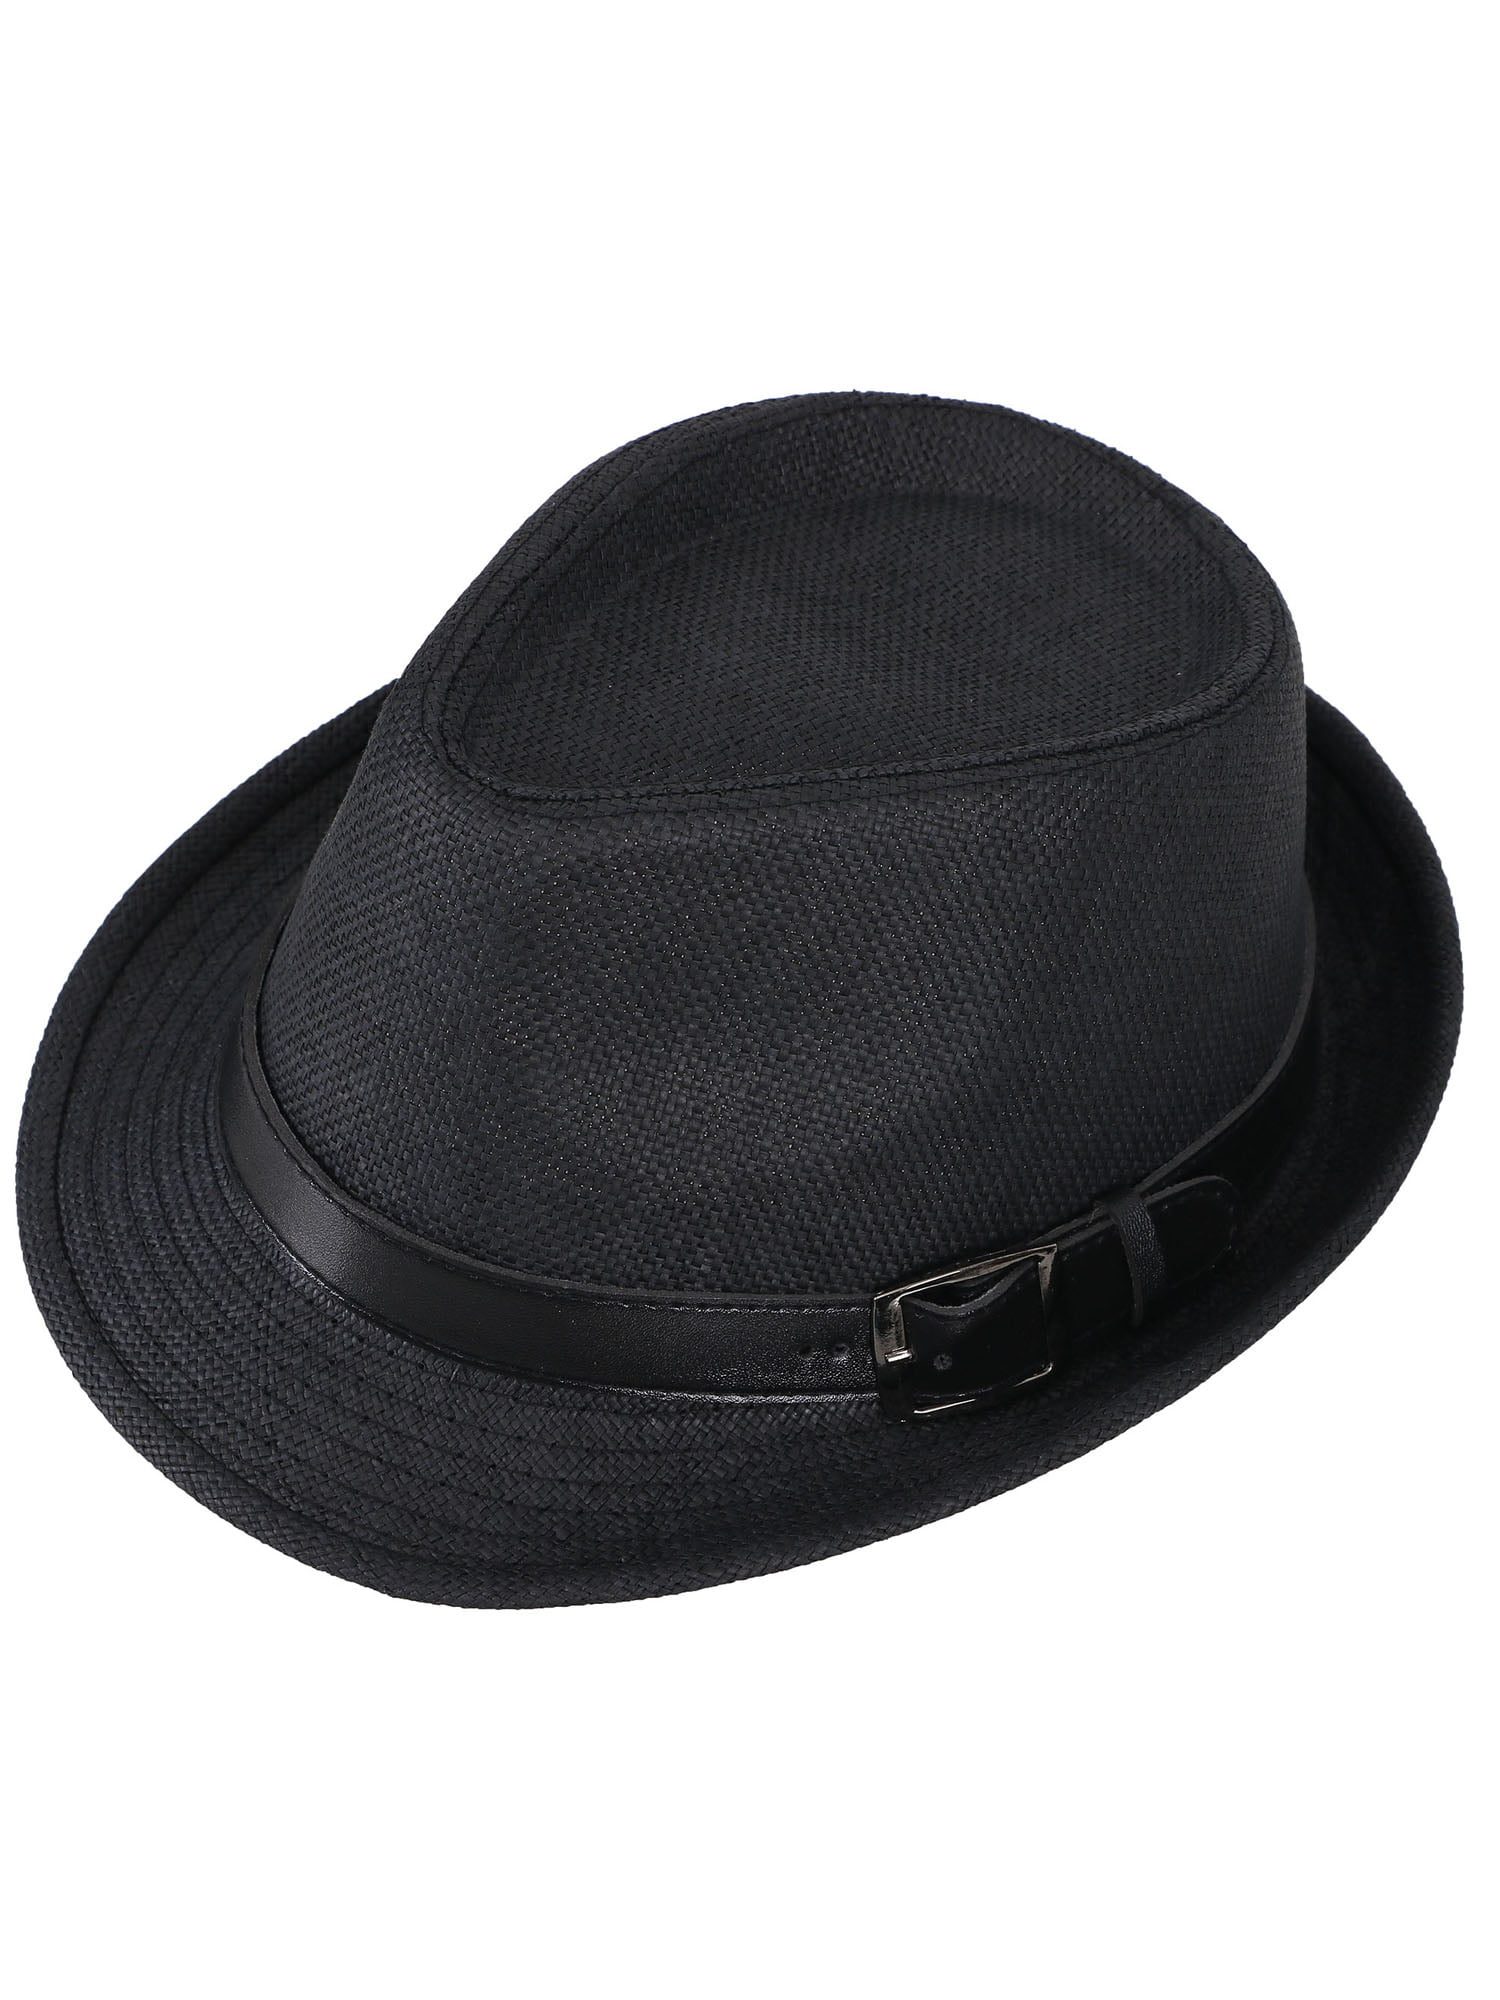 New Westend Men/'s Faux Leather Trilby Fedora Hat